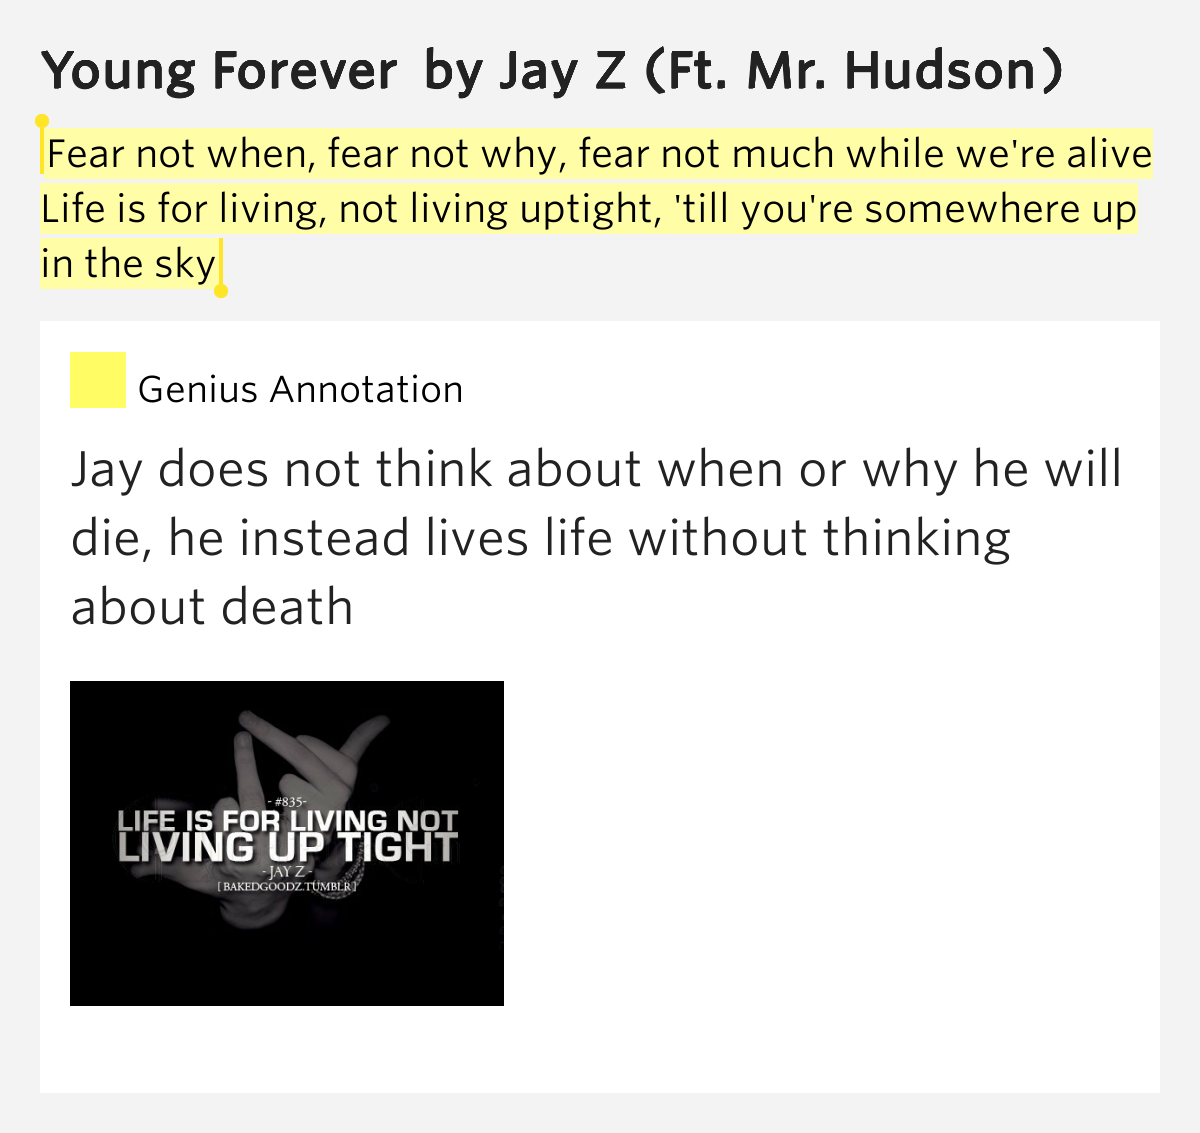 Jay z feat mr hudson young forever lyrics mr hudson lyrics september 21 2009 tweet album the blueprint 3 genre hip hop released september 2008 your song lyrics malvernweather Images